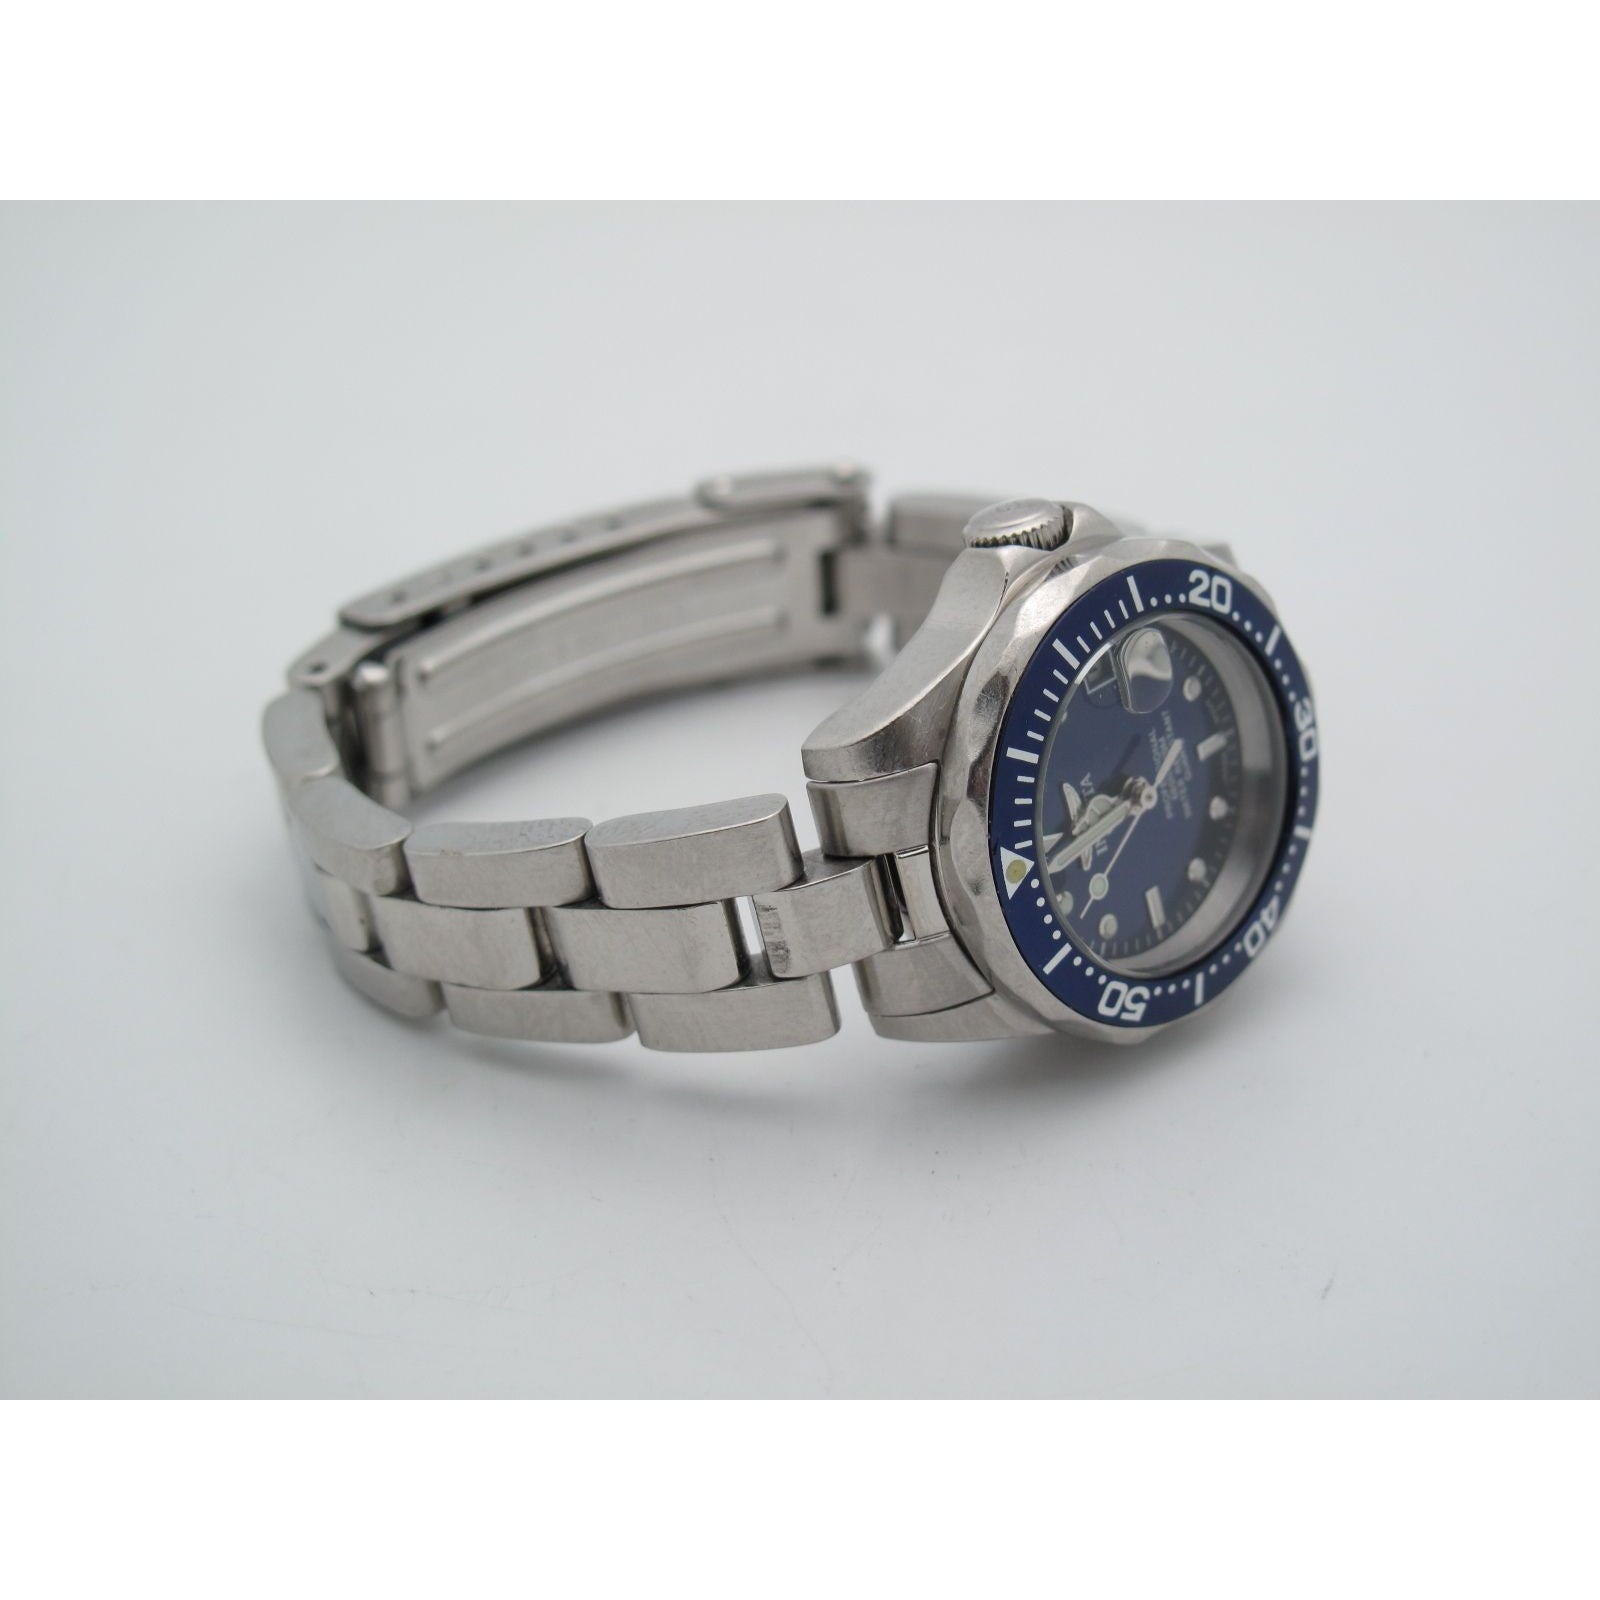 Invicta Ladies Professional Navy Blue Date Dial Stainless Steel Watch 9177A